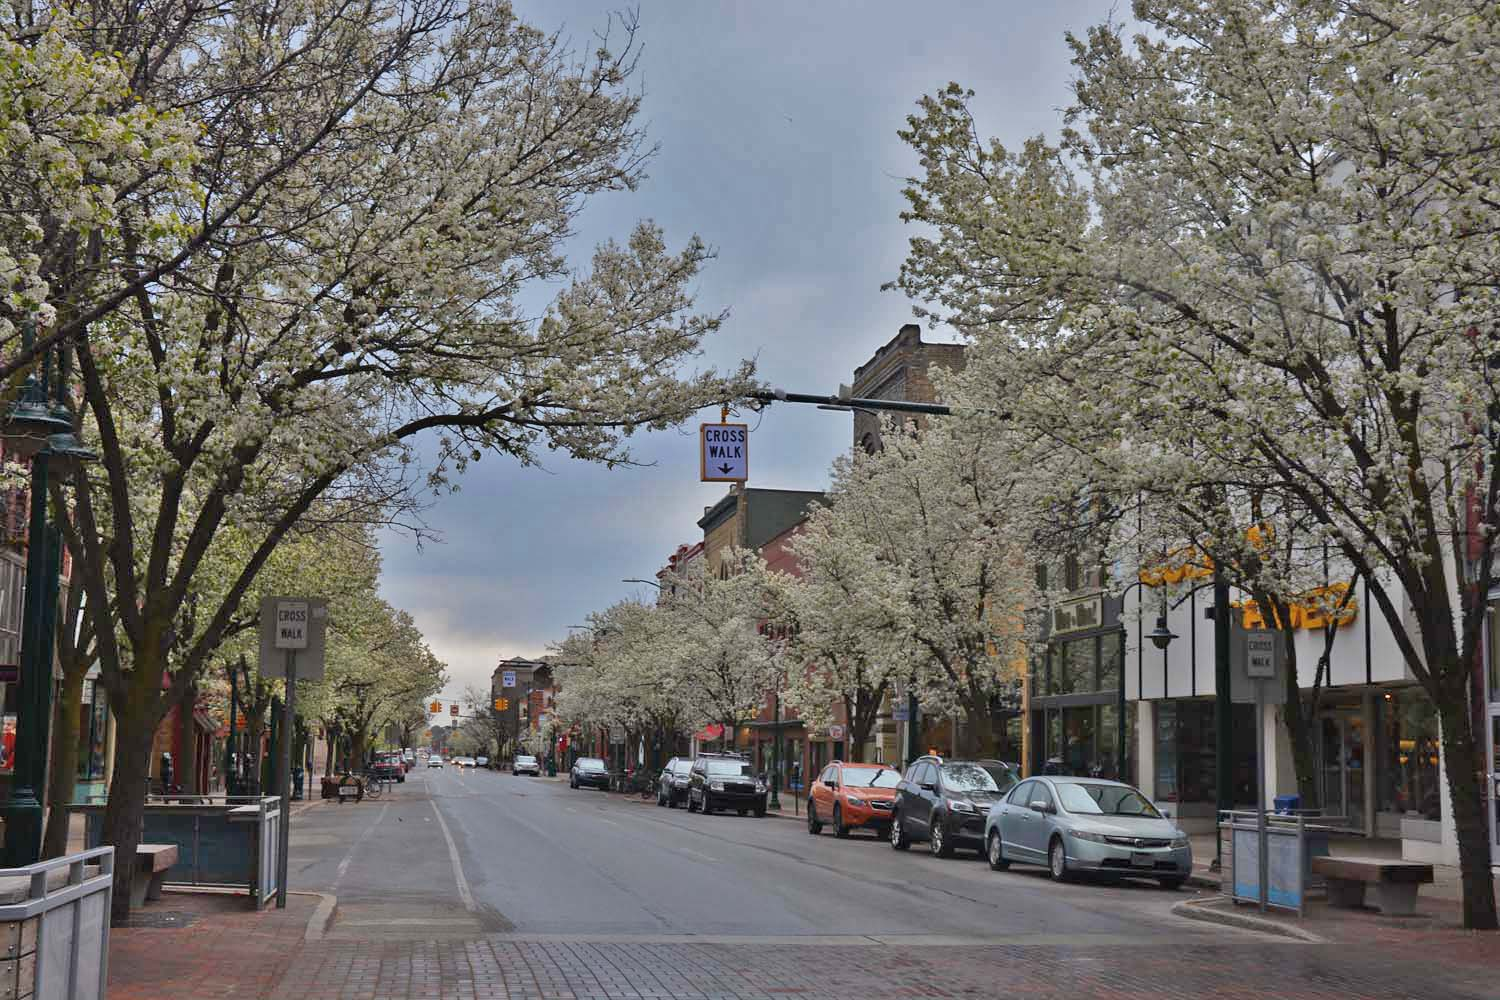 Downtown Traverse City in the Spring